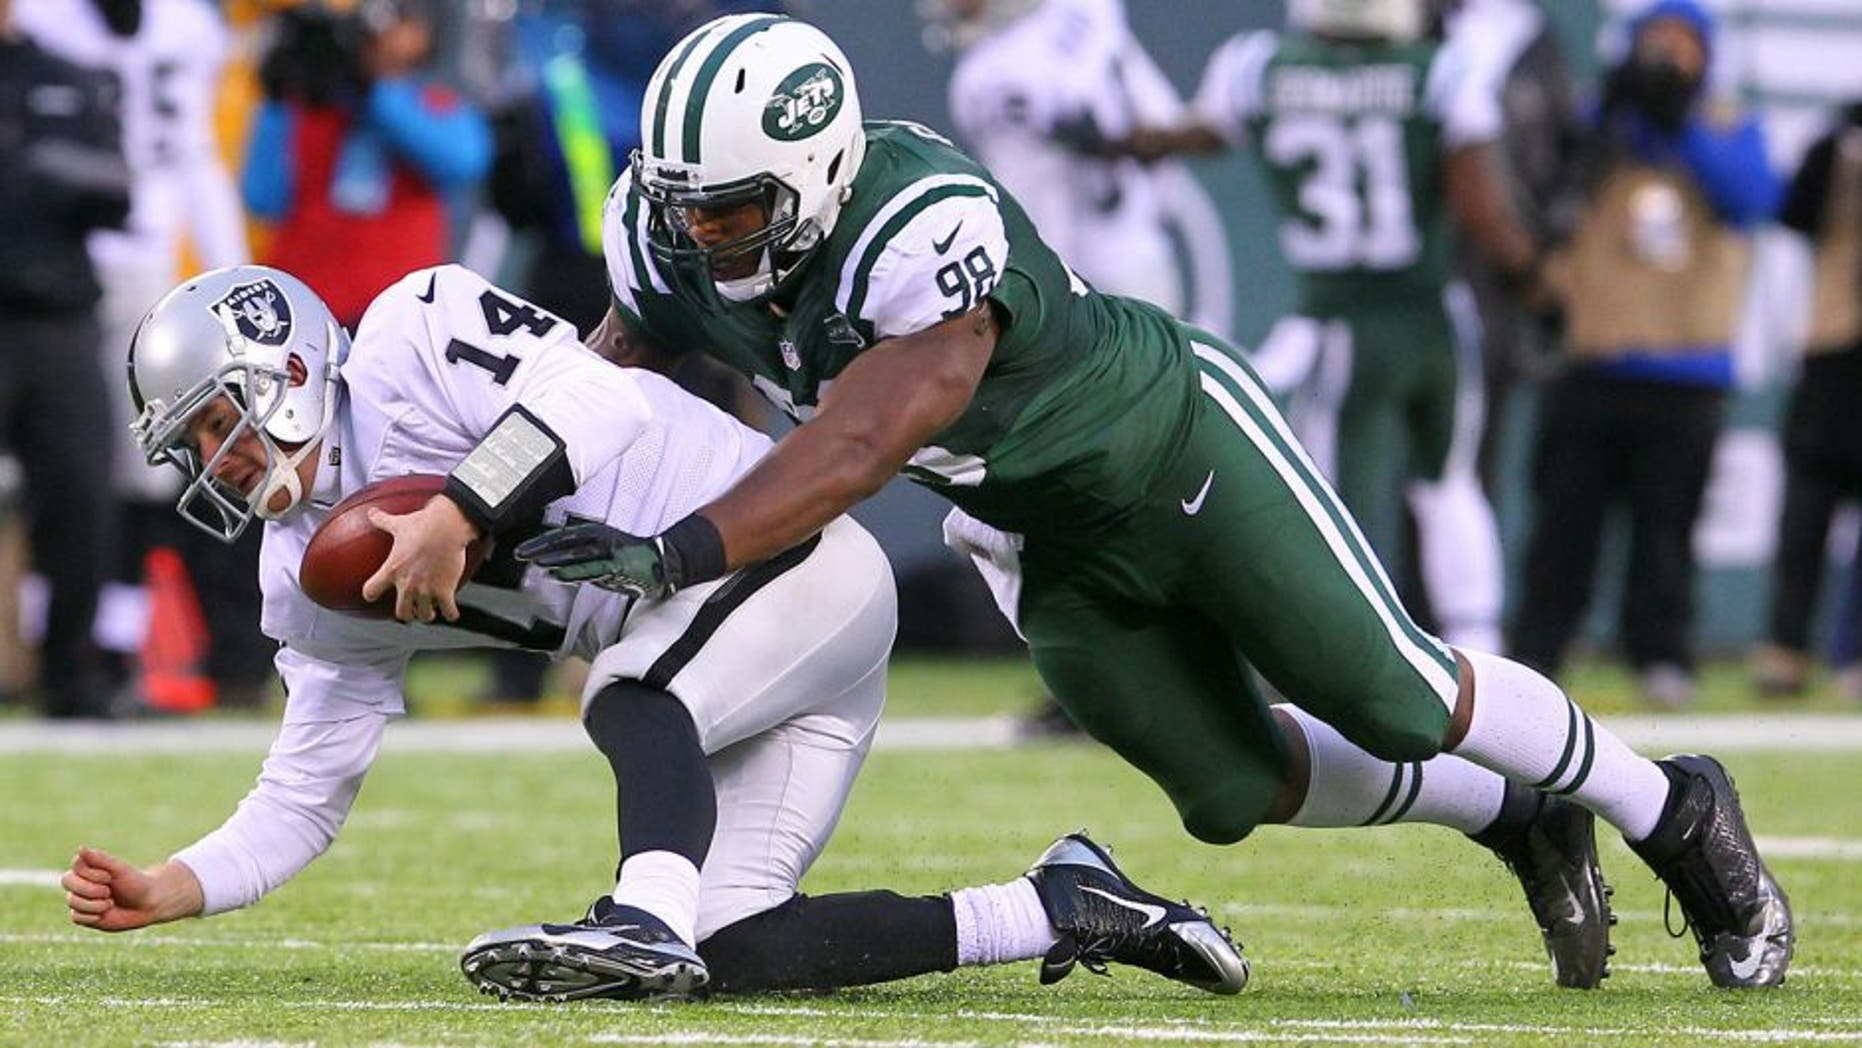 Dec 8, 2013; East Rutherford, NJ, USA; Oakland Raiders quarterback Matt McGloin (14) recovers his own fumble while being tackled by New York Jets defensive end Quinton Coples (98) during the second half at MetLife Stadium. The Jets defeated the Raiders 37-27. Mandatory Credit: Ed Mulholland-USA TODAY Sports